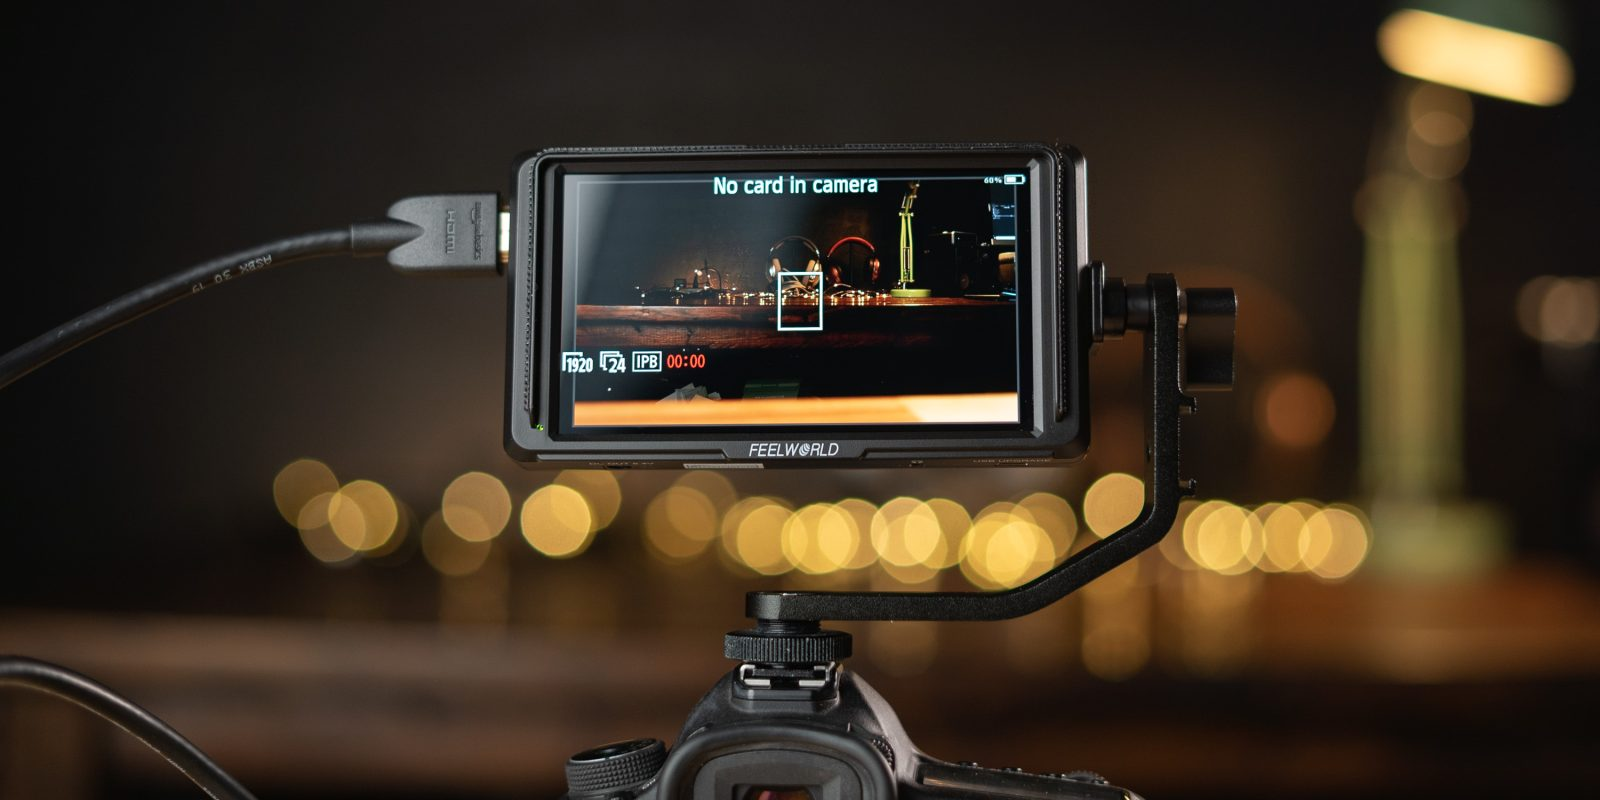 Best budget on-camera monitor at Amazon: Is the Feelworld F5 worth it? [Video]